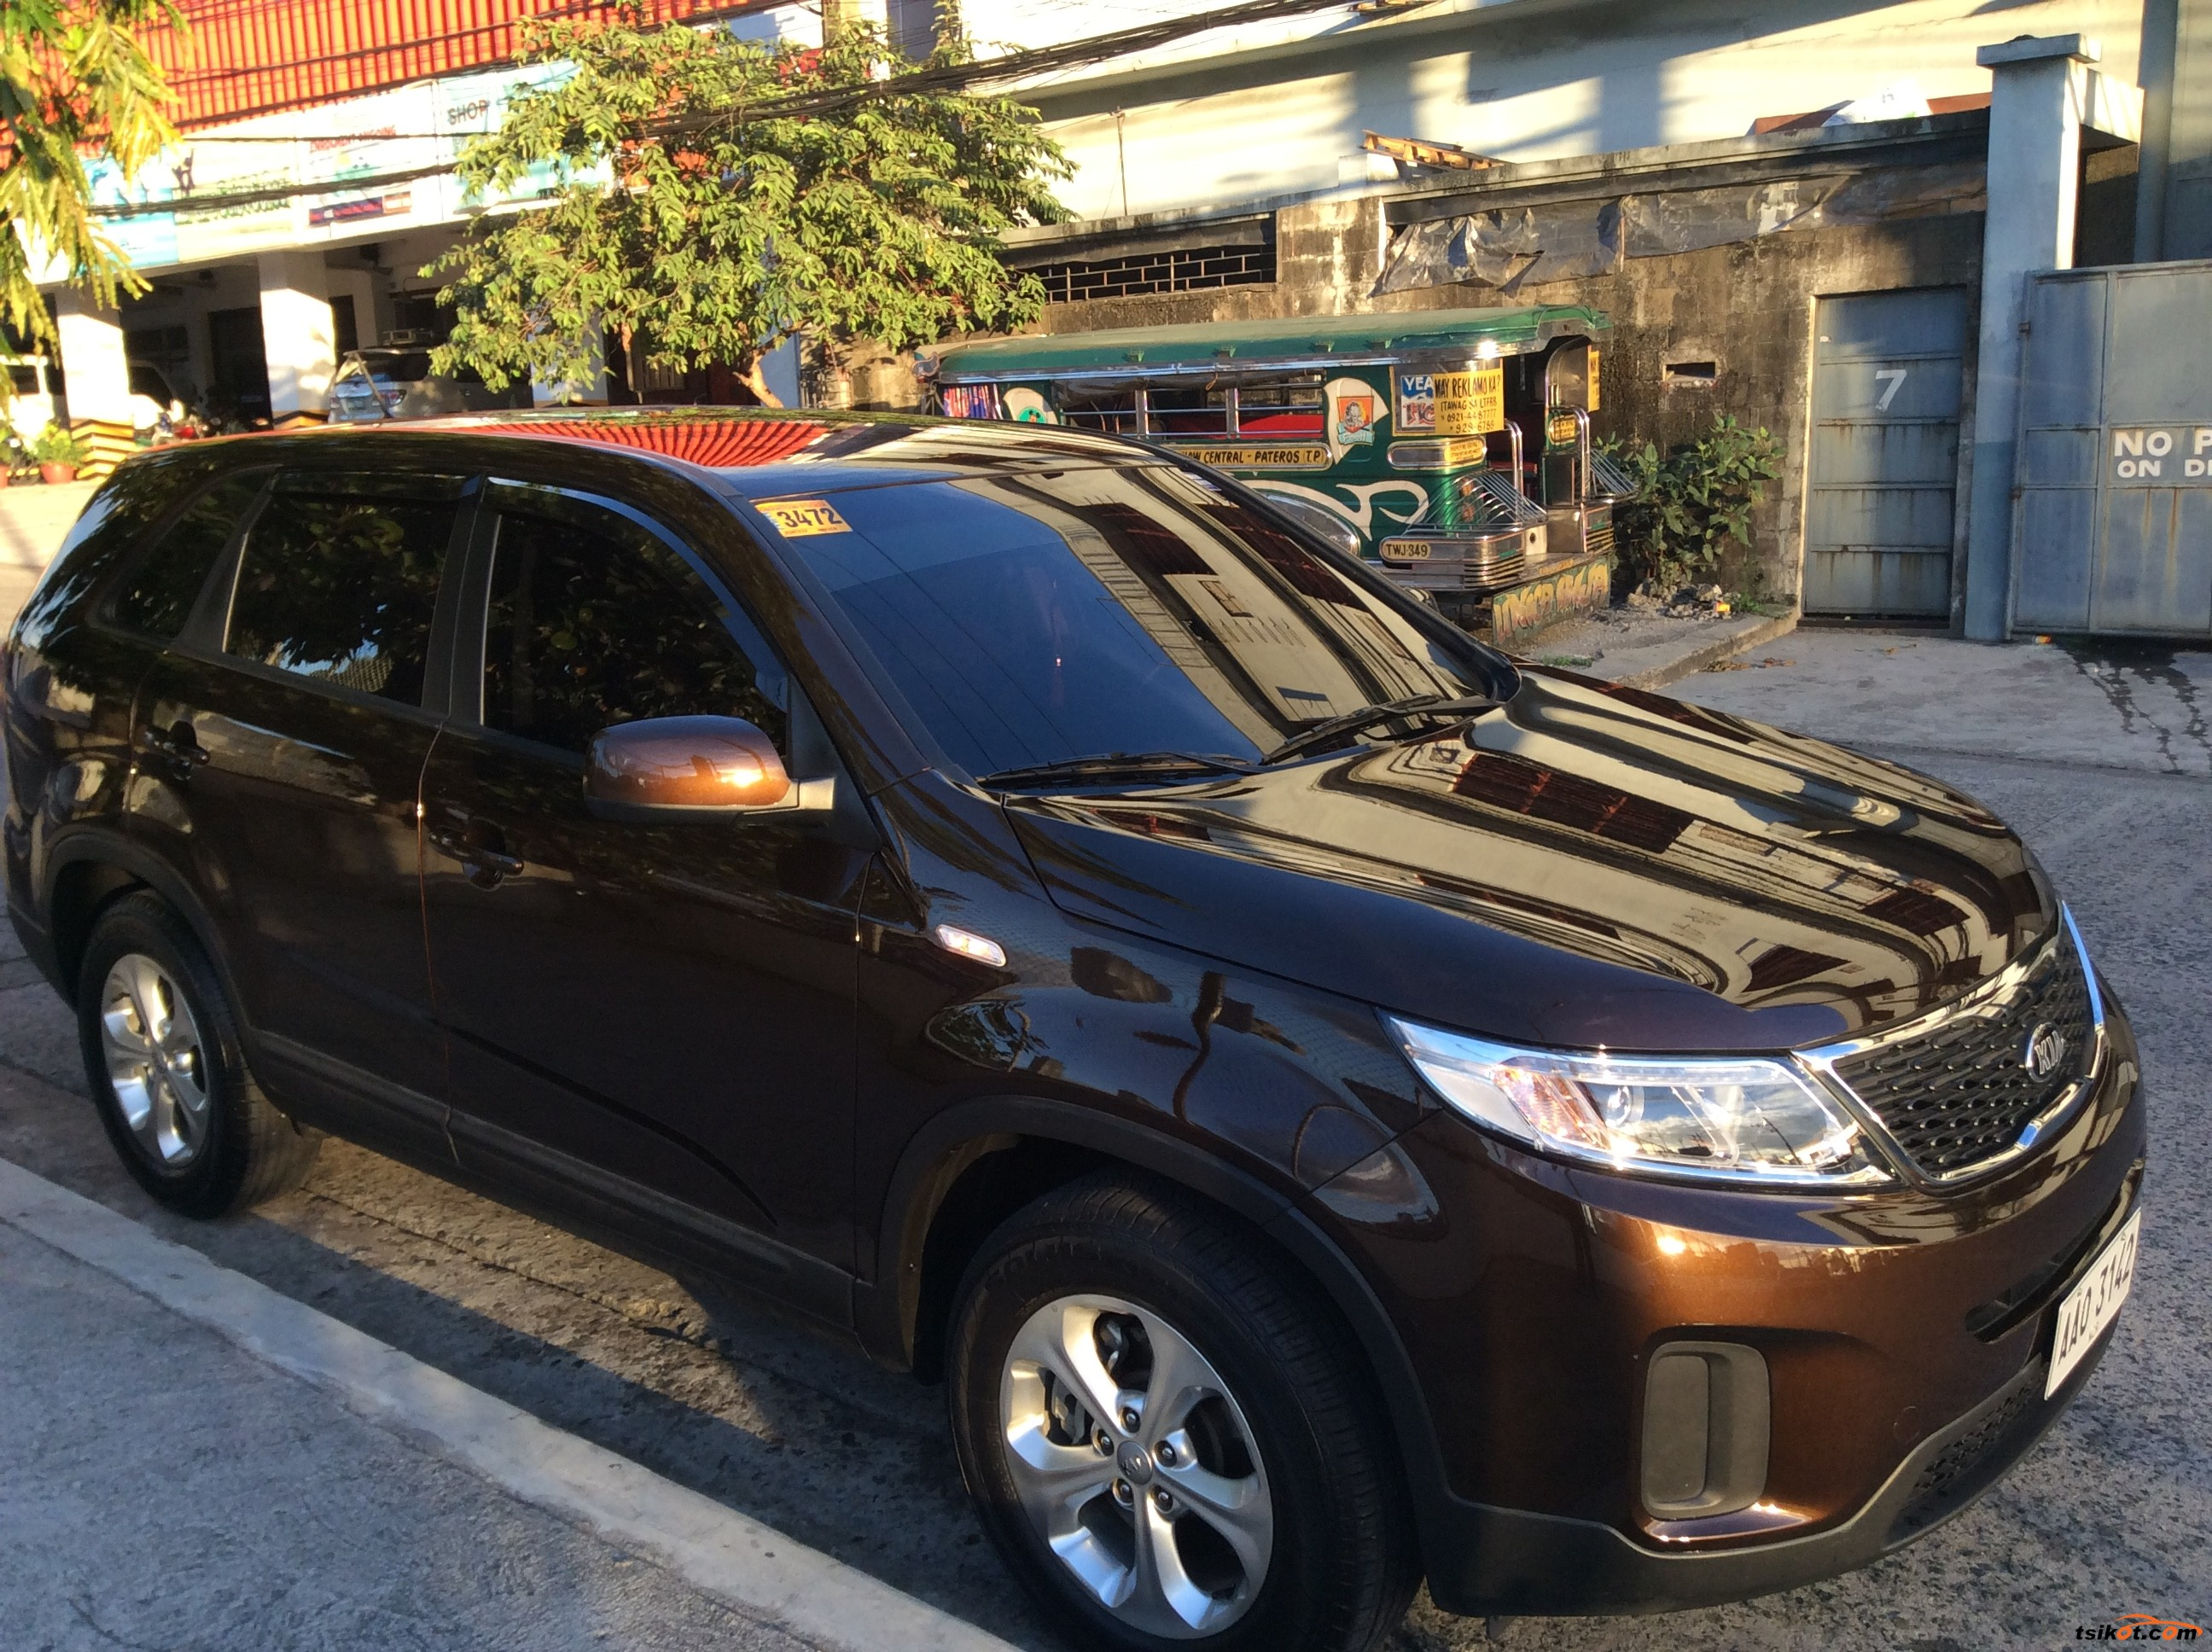 kia sorento 2014 car for sale metro manila. Black Bedroom Furniture Sets. Home Design Ideas